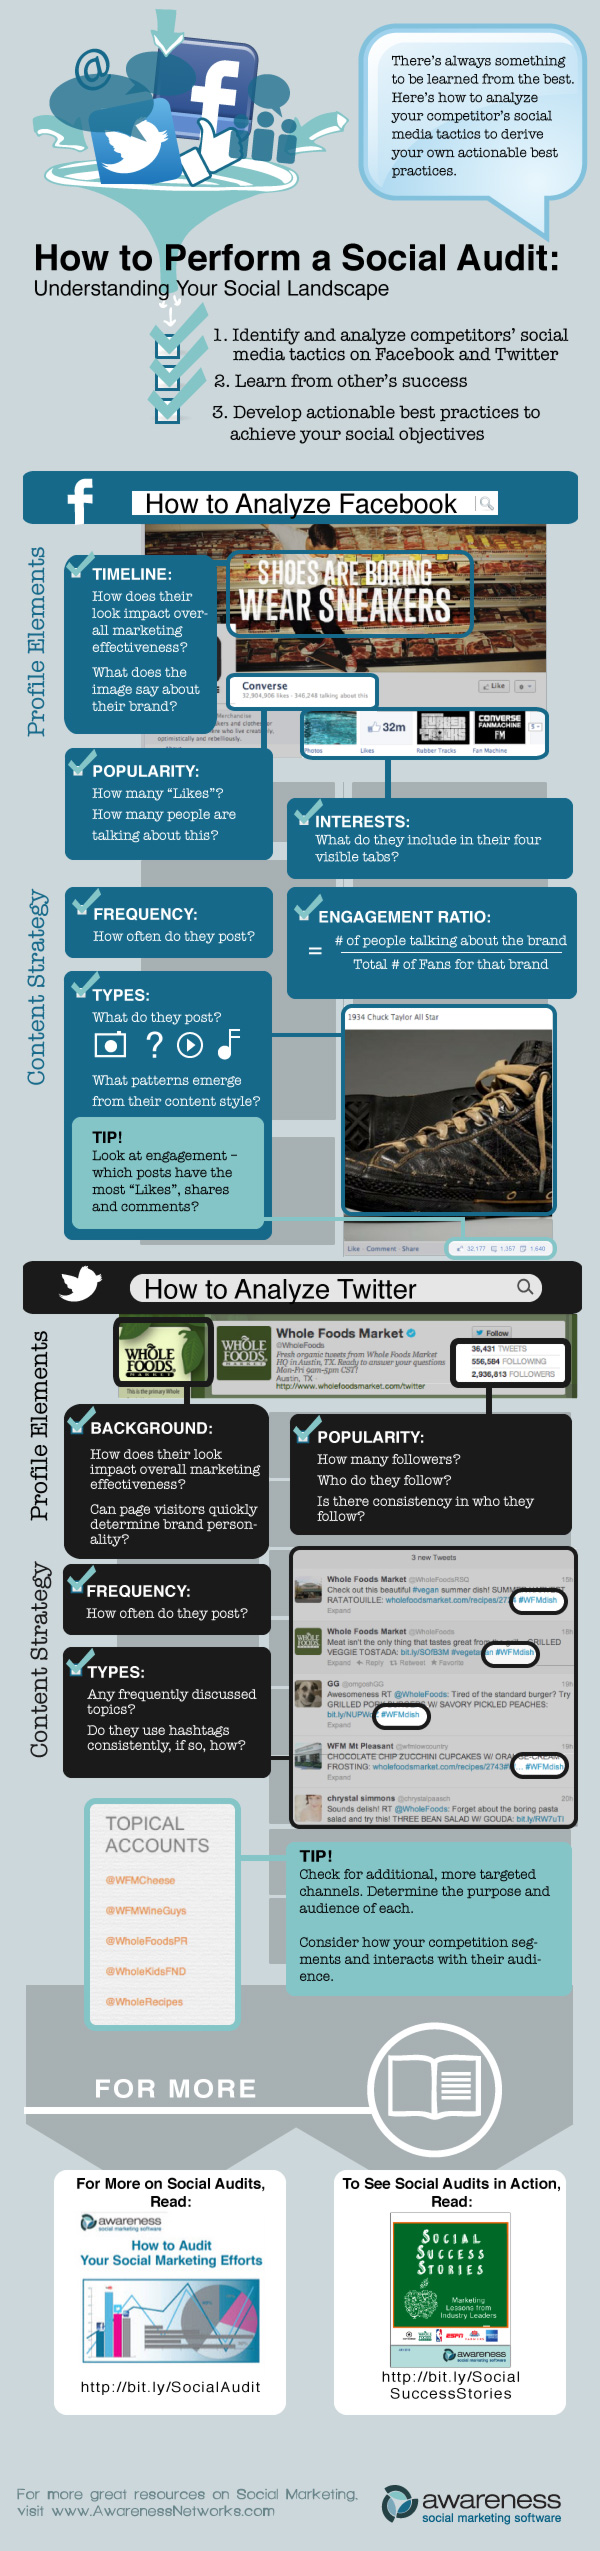 social audits infographic final resized 600